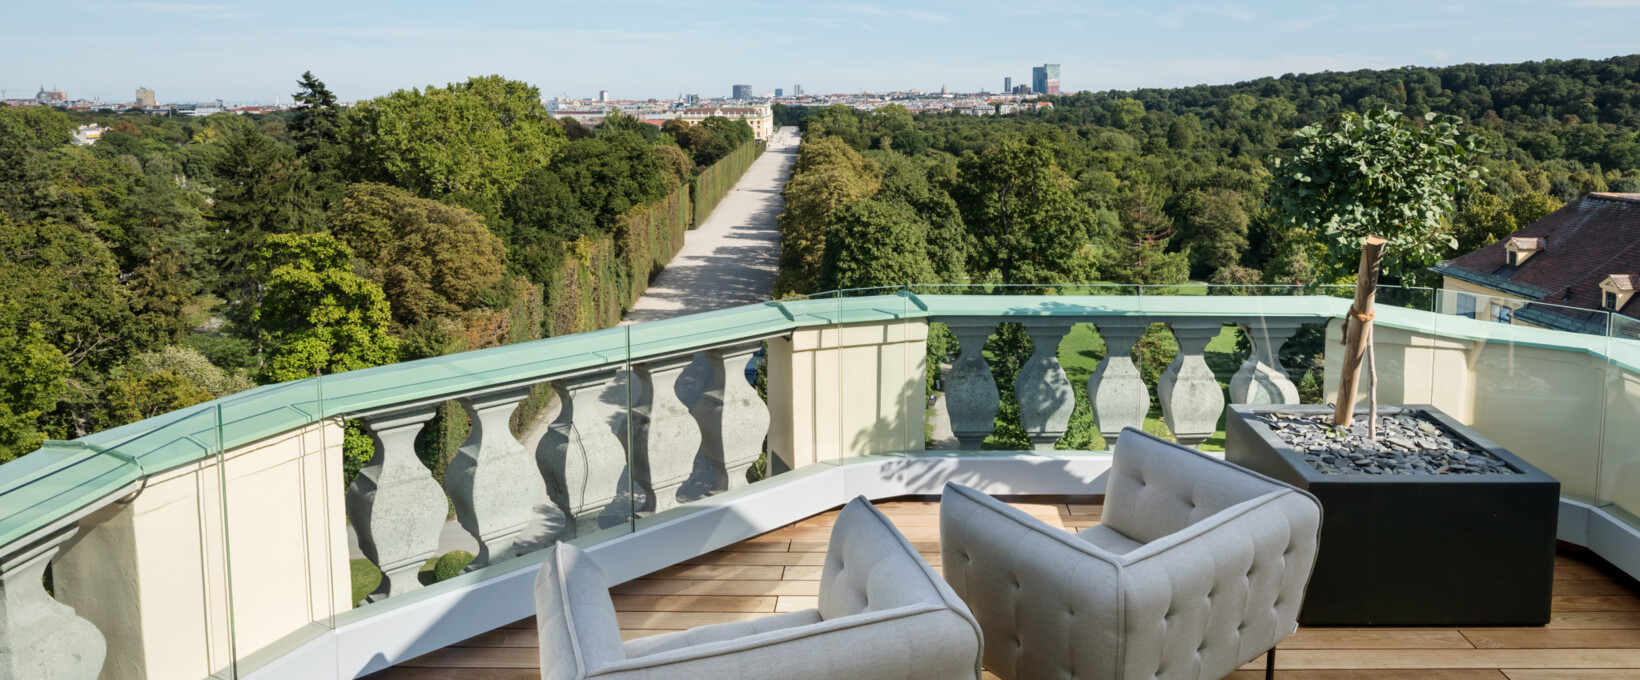 Kaiser Suite rooftop terrace with view over Schönbrunn Palace Gardens  | Parkhotel Schönbrunn in Vienna